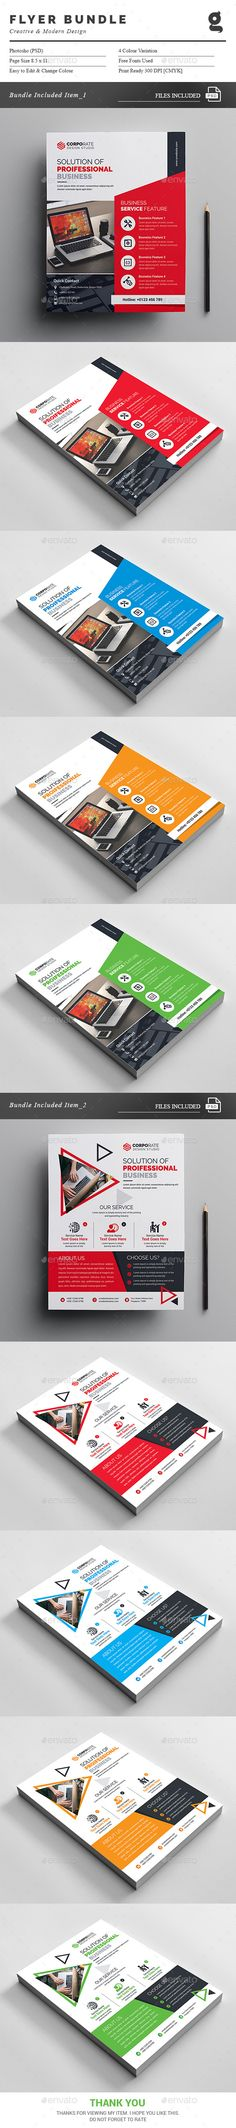 Flyer Templates PSD Bundle. Download here: https://graphicriver.net/item/flyer-bundle-2-in-1/17144651?ref=ksioks